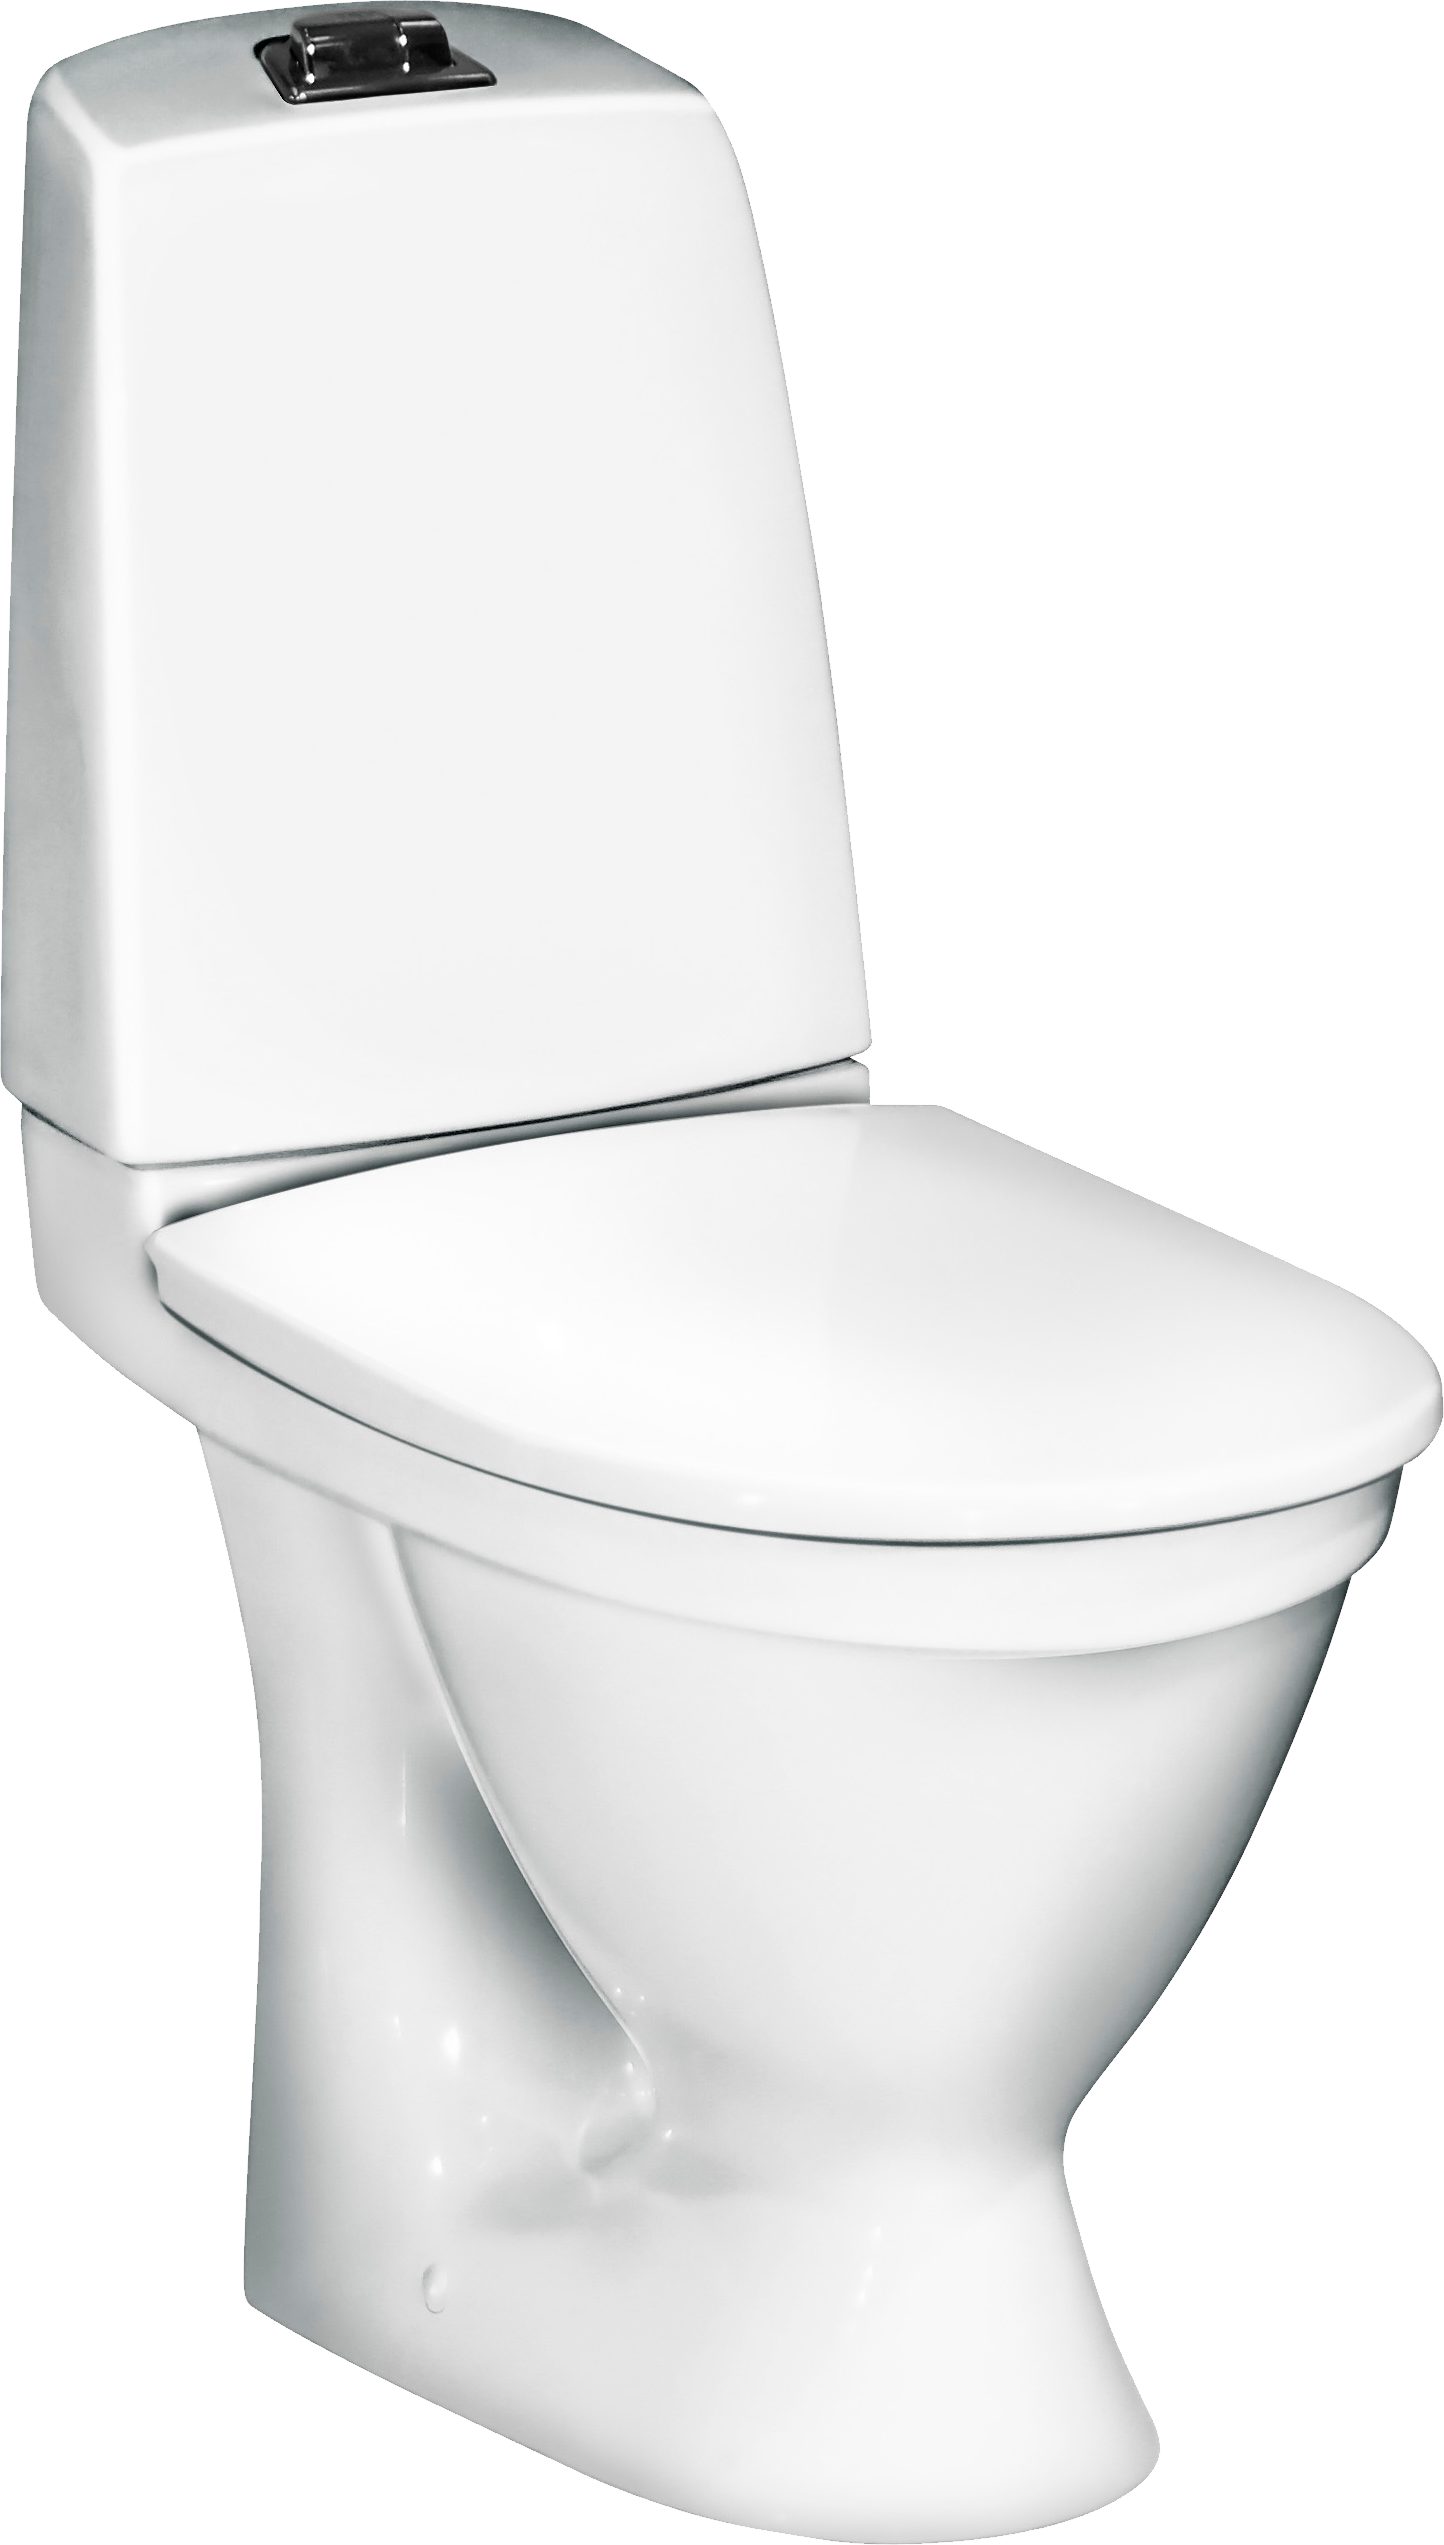 Now you can download Toilet Transparent PNG Image